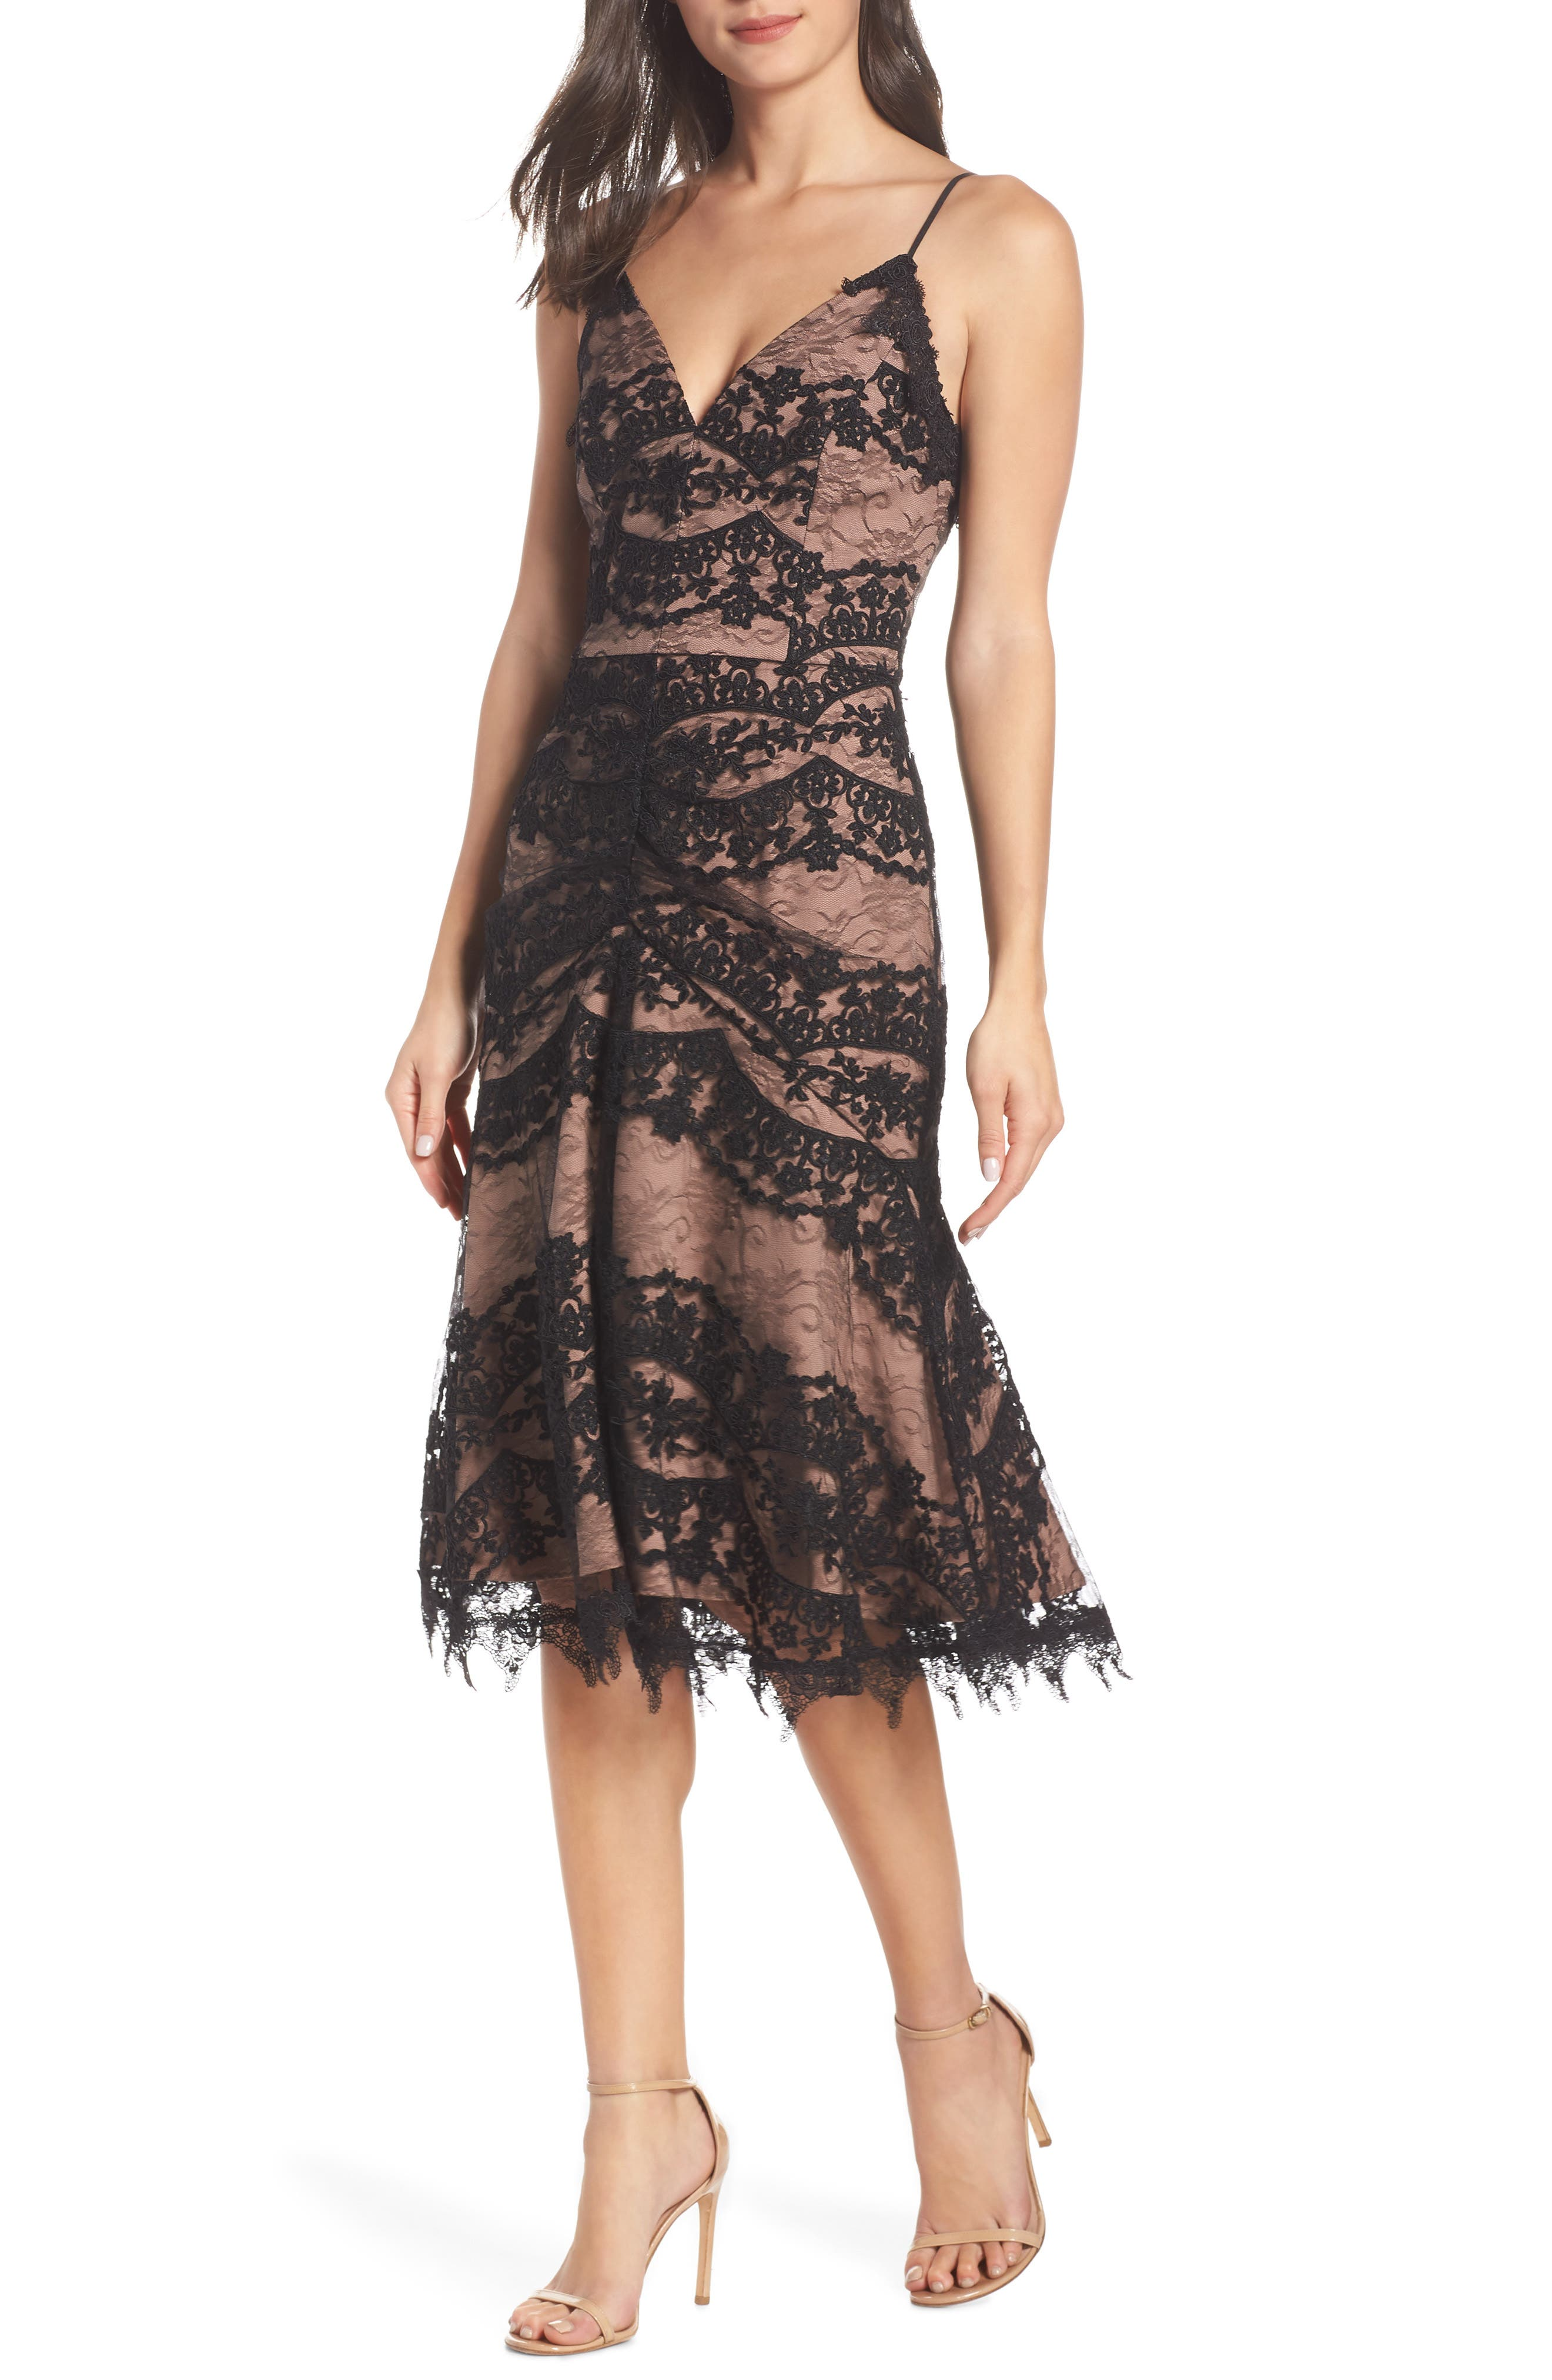 HARLYN Lace Midi Tea-Length Dress in Black/ Nude